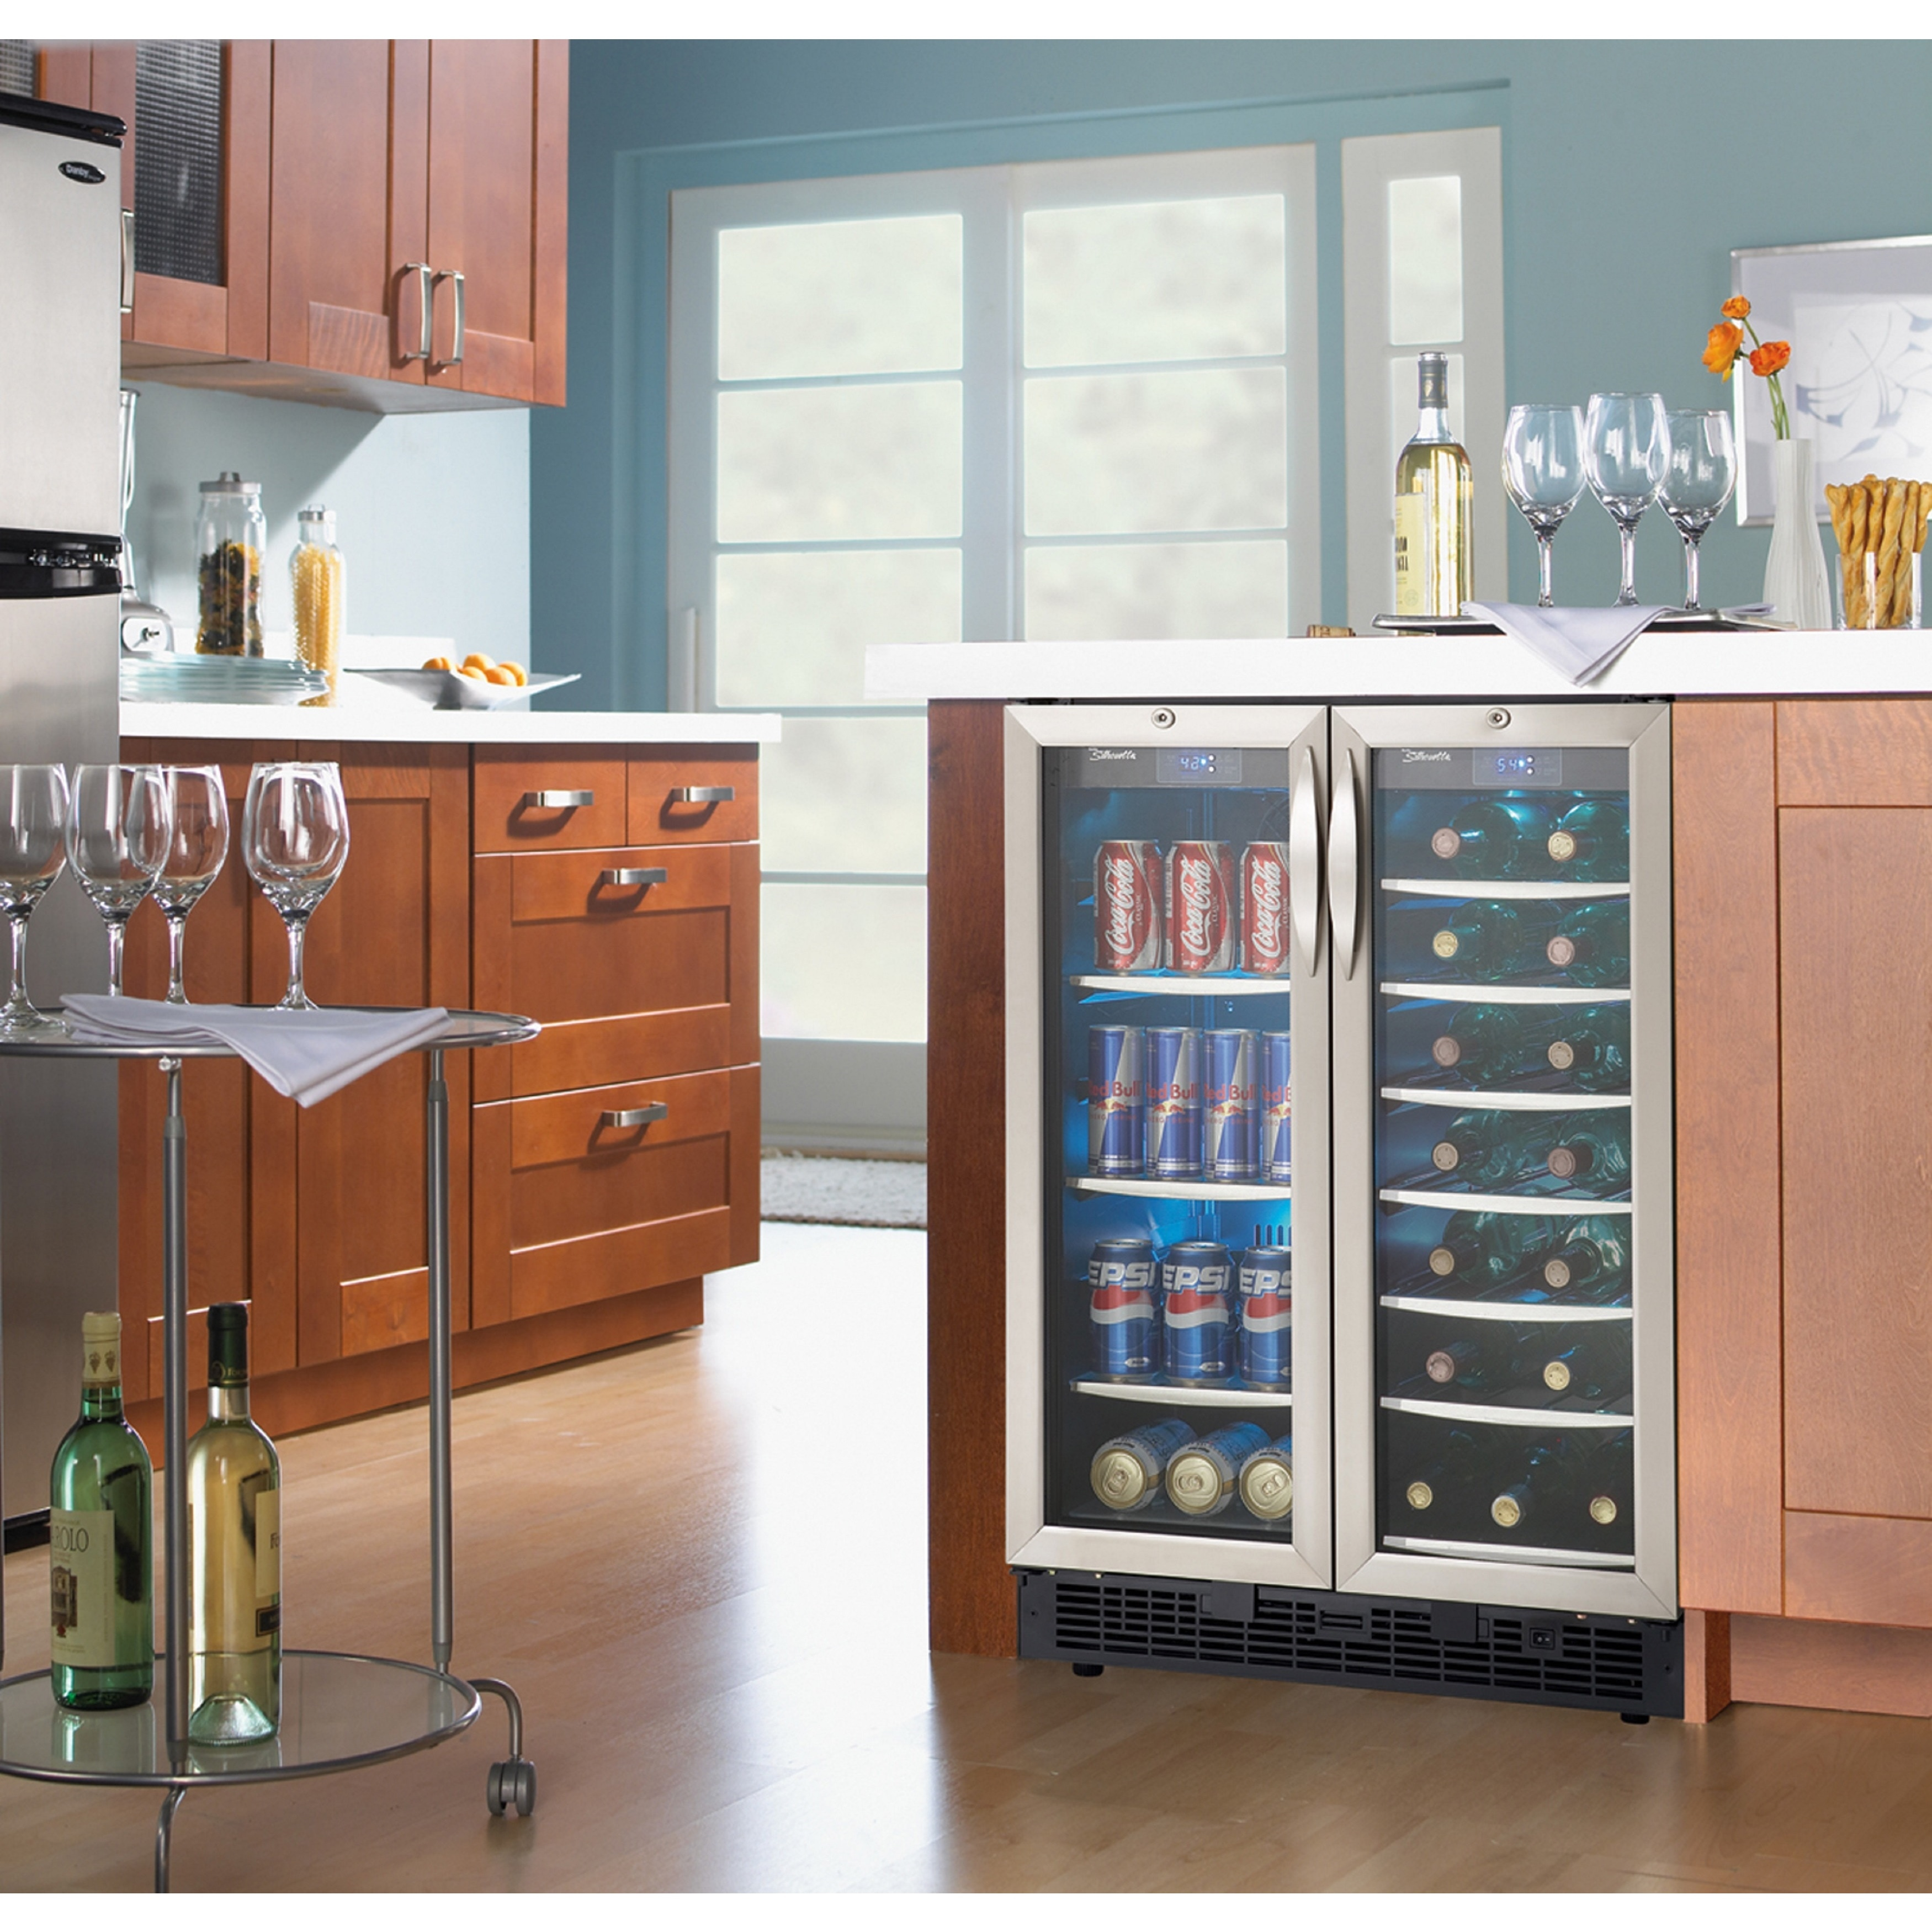 cooler at to bottle show wall kitchen first vinotemp the refrigerator industrys s bath pressroom countertop countertops national kbis wine vt industry wm launch mounted